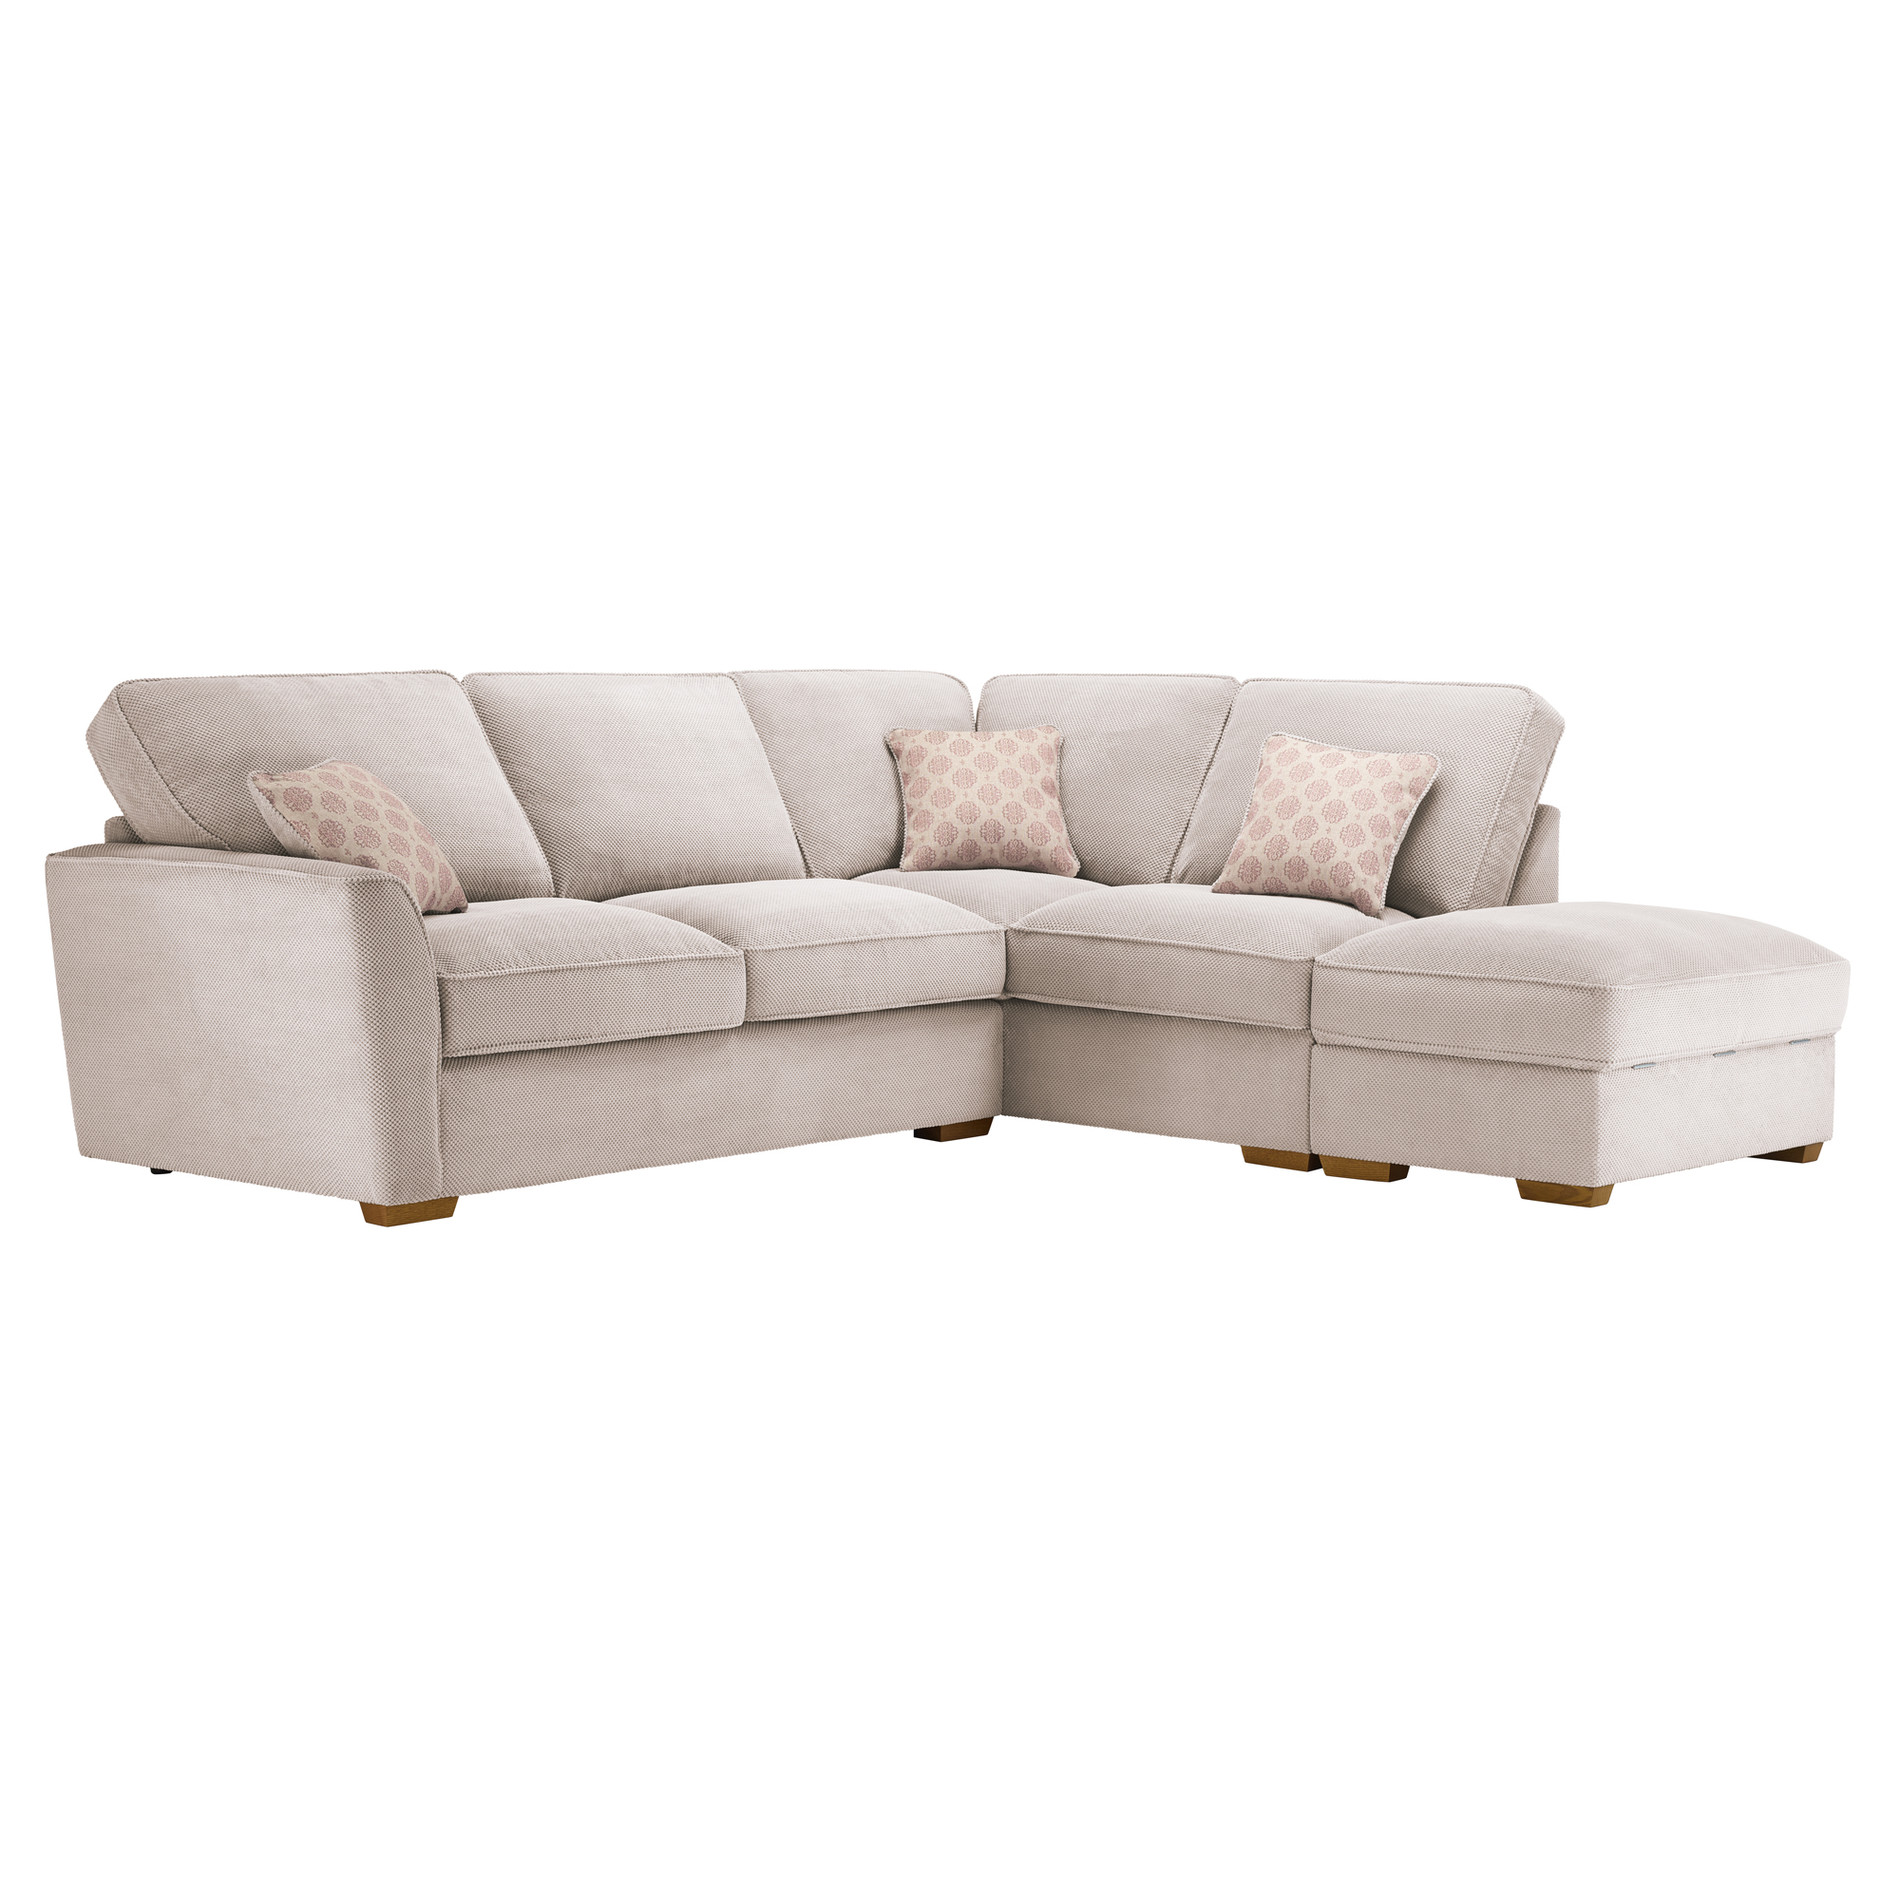 Nebraska Left High Back Corner Sofa Aero Fawn Footstool